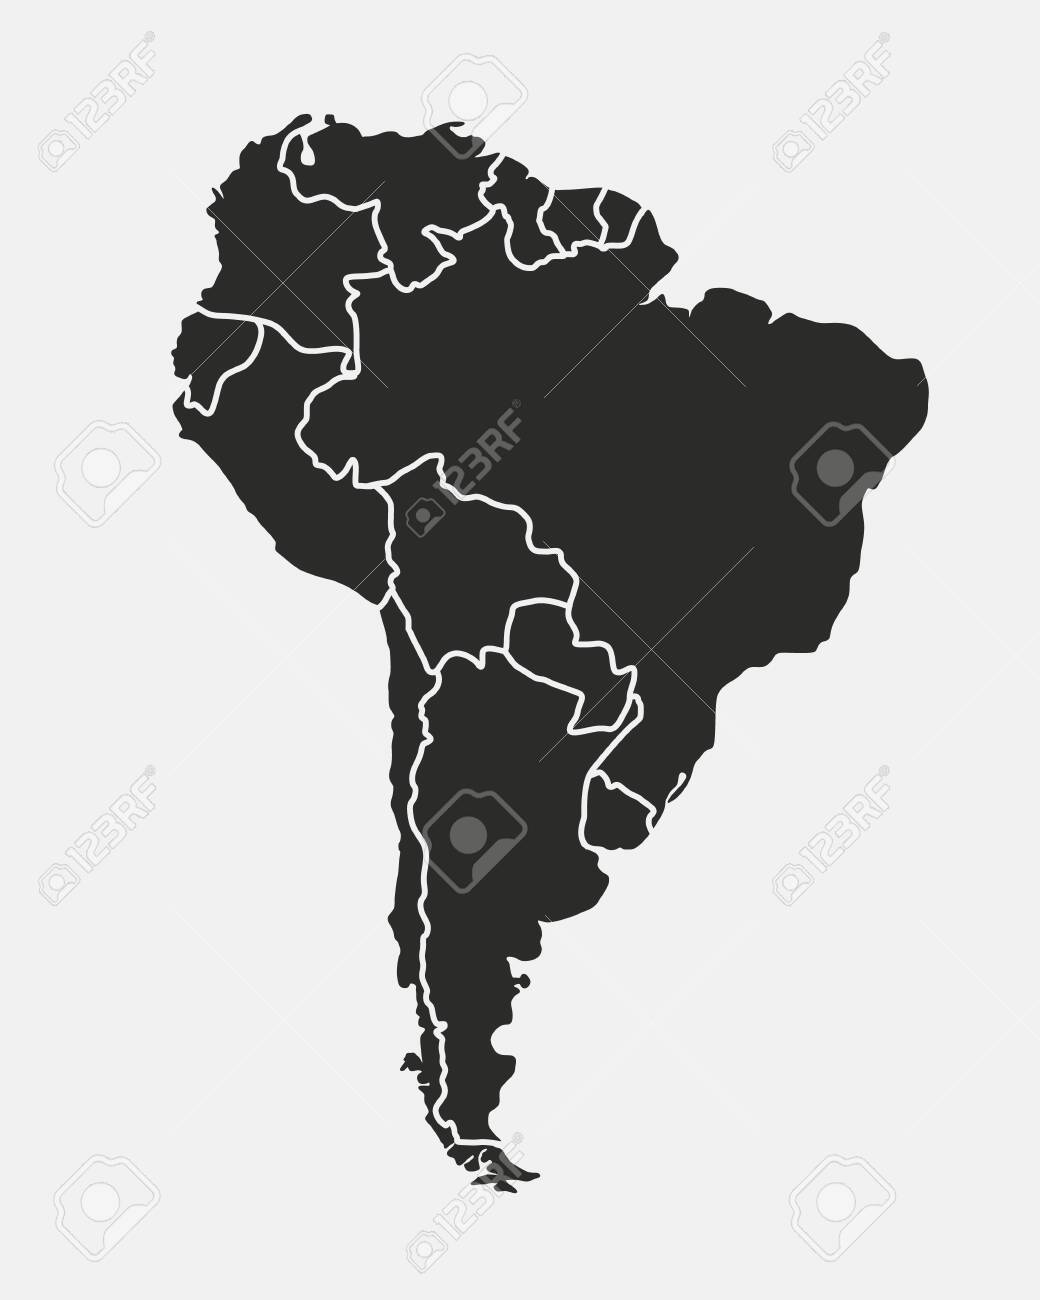 South America map isolated on a white background. Latin America background. Map of South America with regions. Vector illustration - 149690045